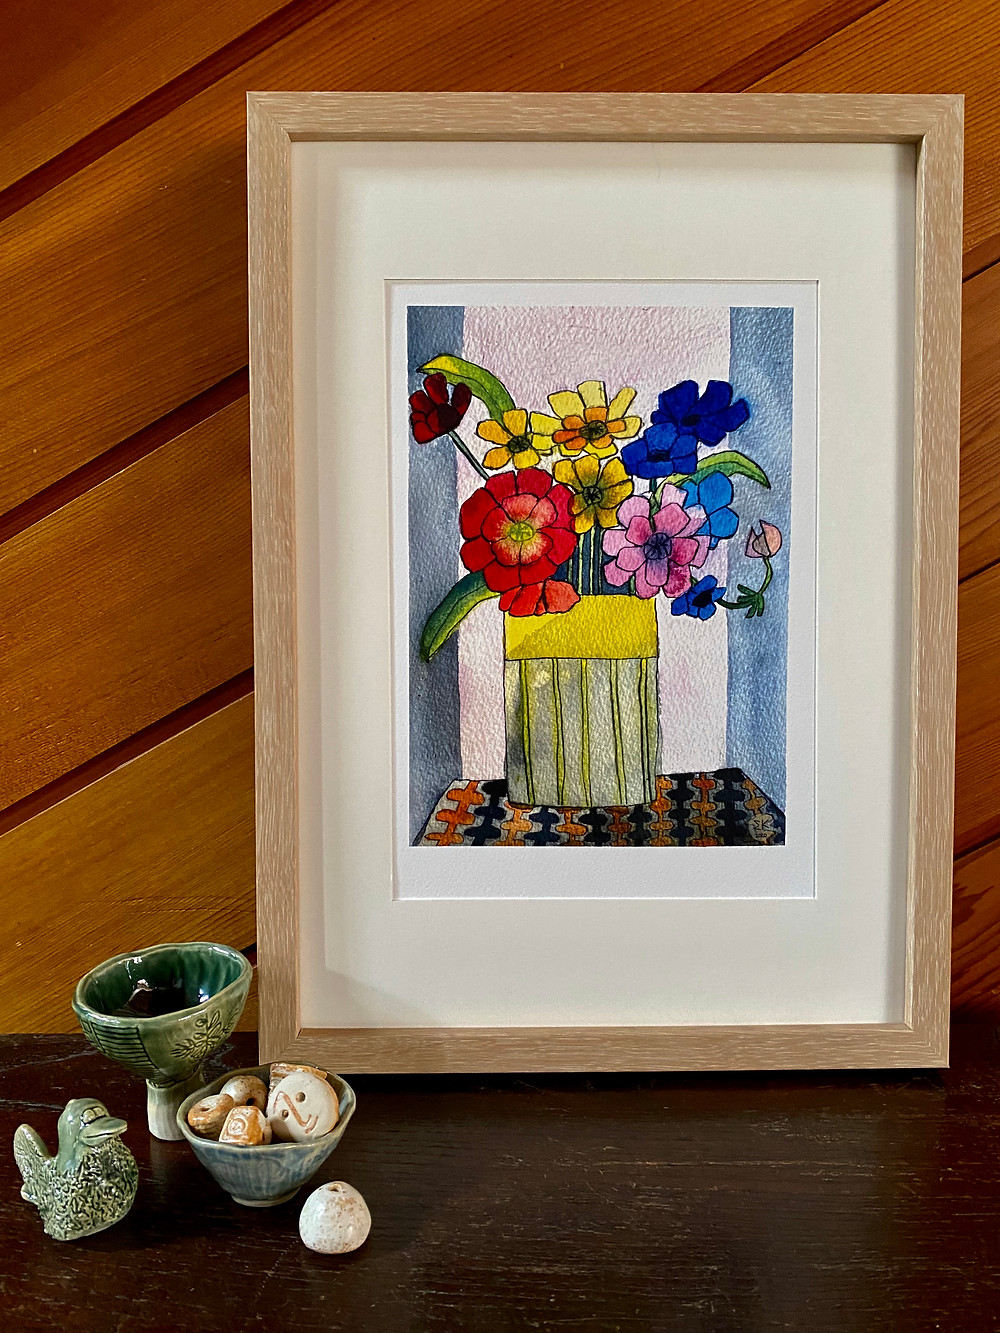 Framed print by soph&son available at Etsy store. Ceramics also by soph&son.